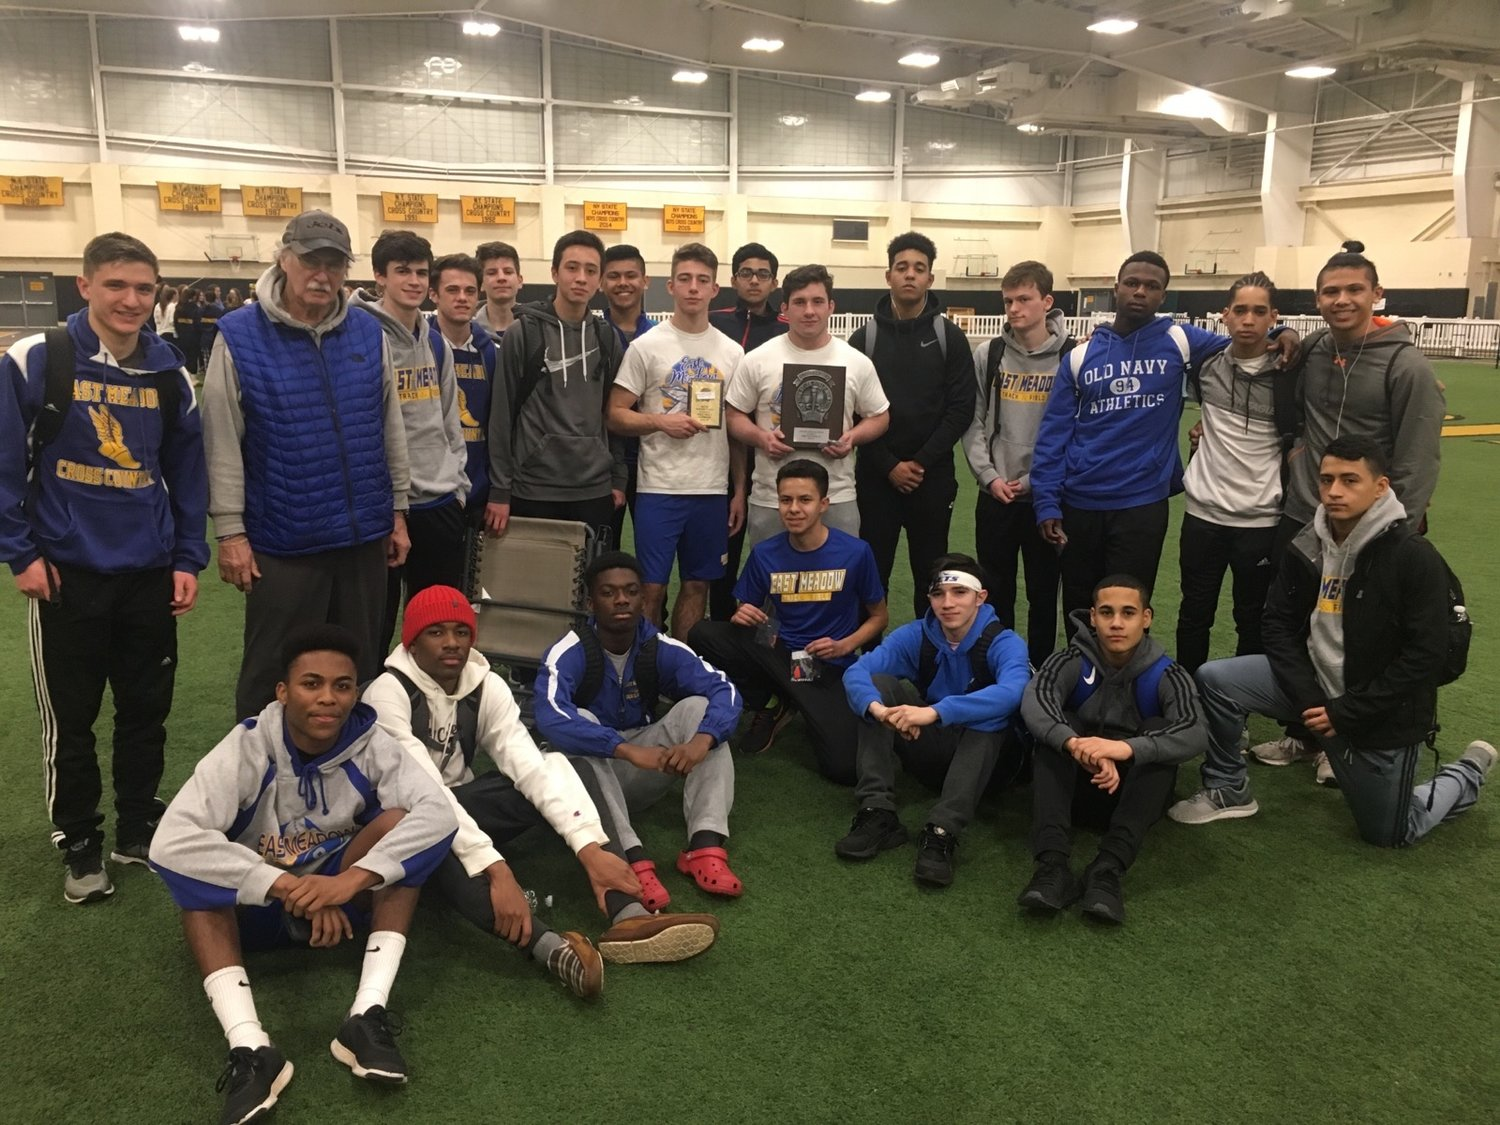 The East Meadow High School boys winter track team won a sixth straight conference championship this year.